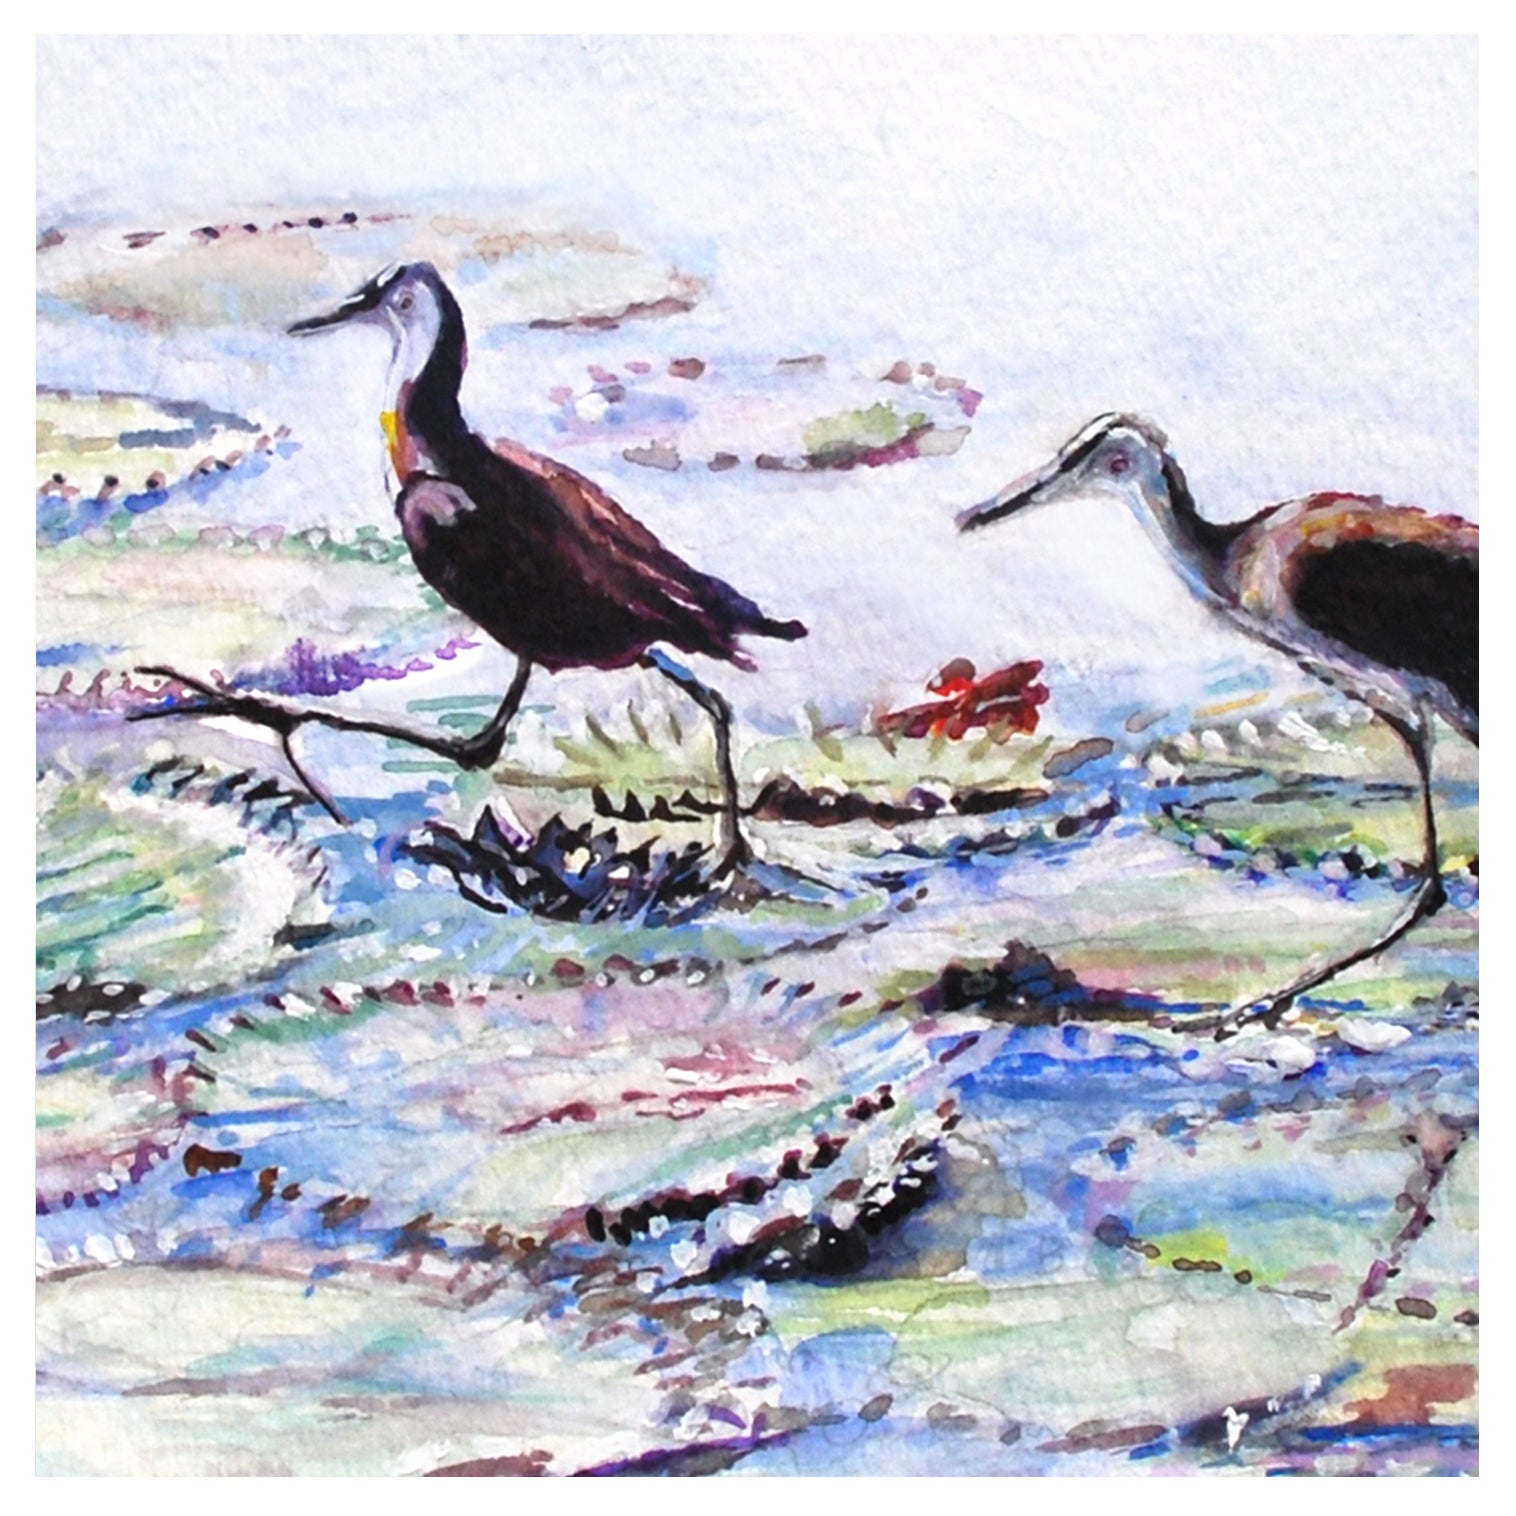 1977 Walking on Water, Watercolor Print